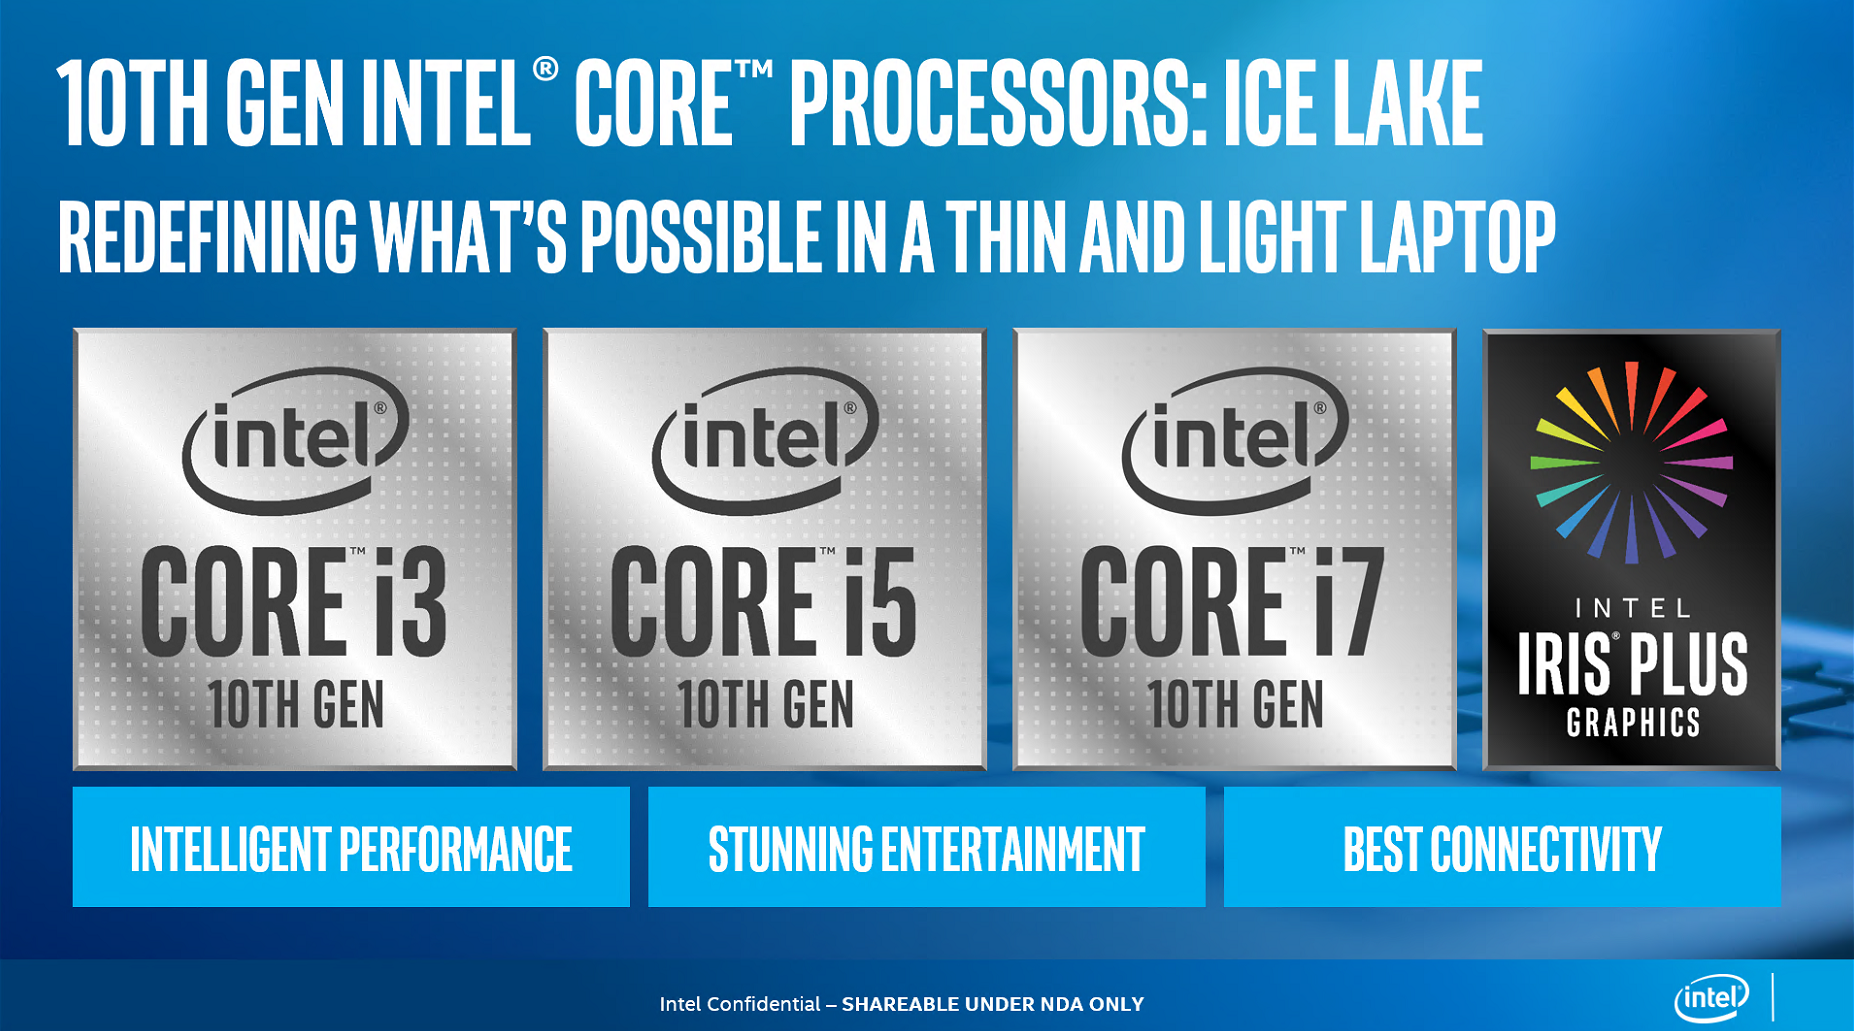 Intel debuts 10th Gen processors